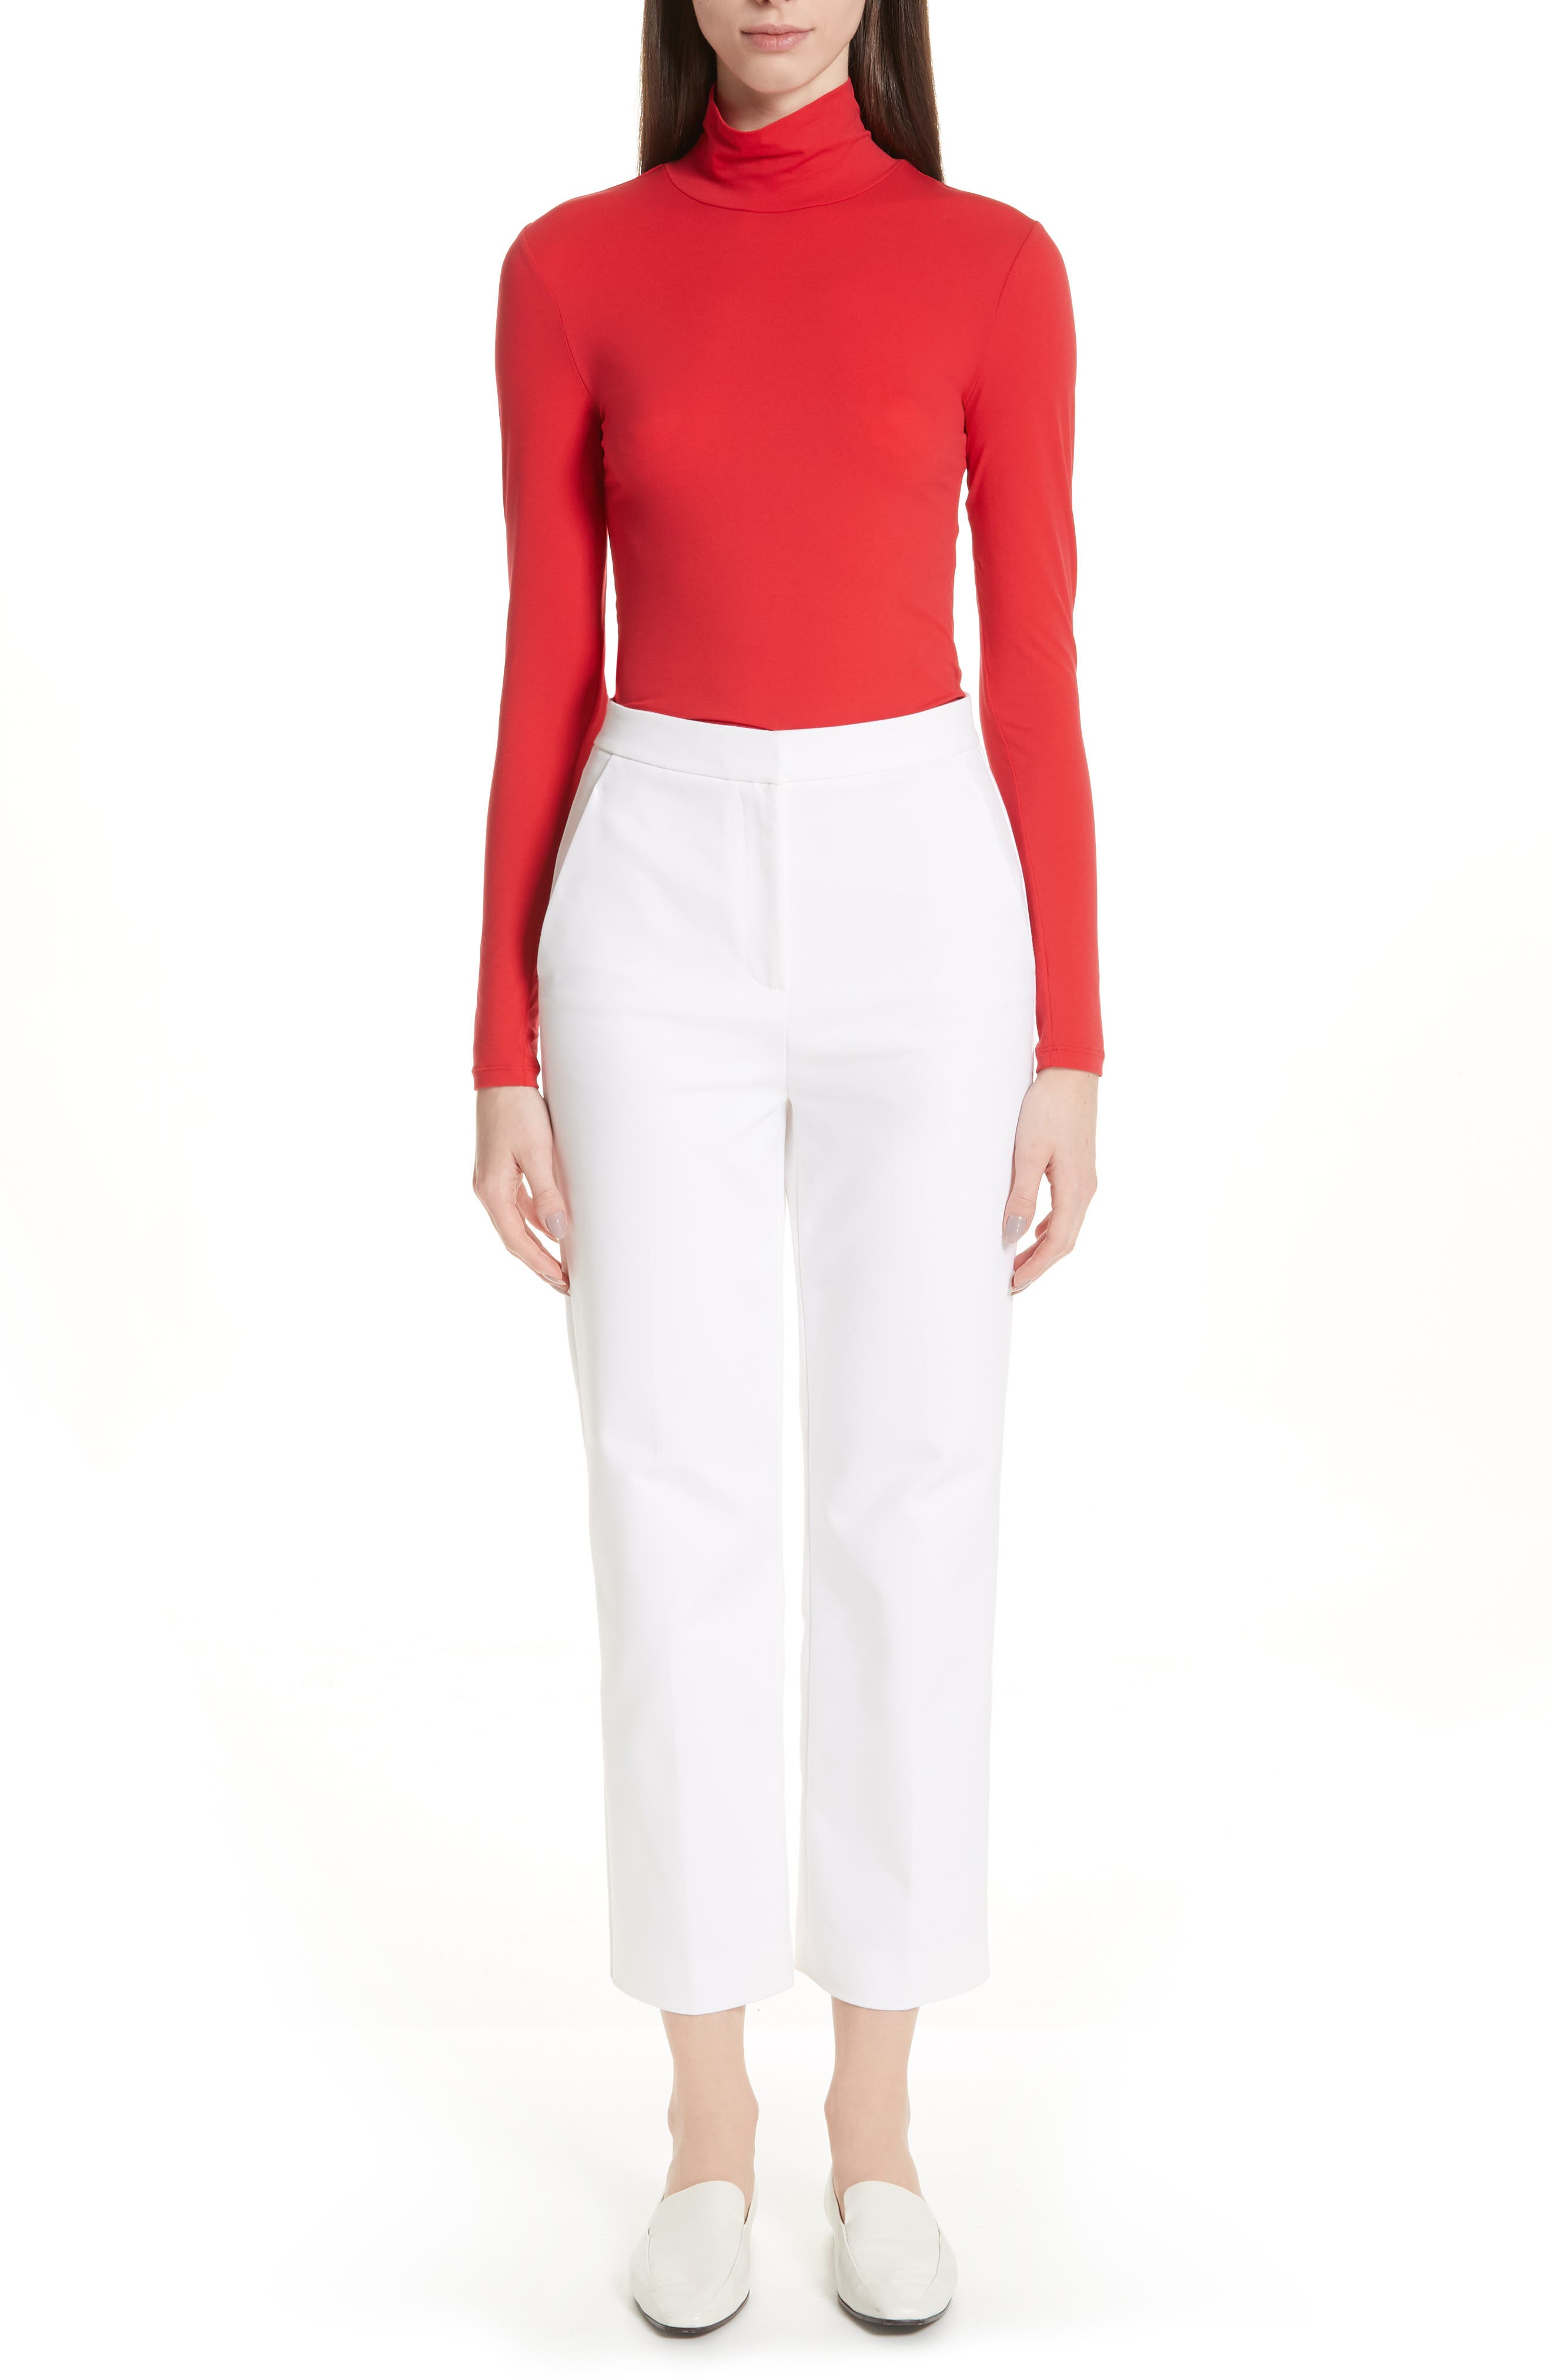 ST. JOHN COLLECTION,                             Nuda Fine Jersey Turtleneck Shell,                             Alternate thumbnail 7, color,                             CRIMSON